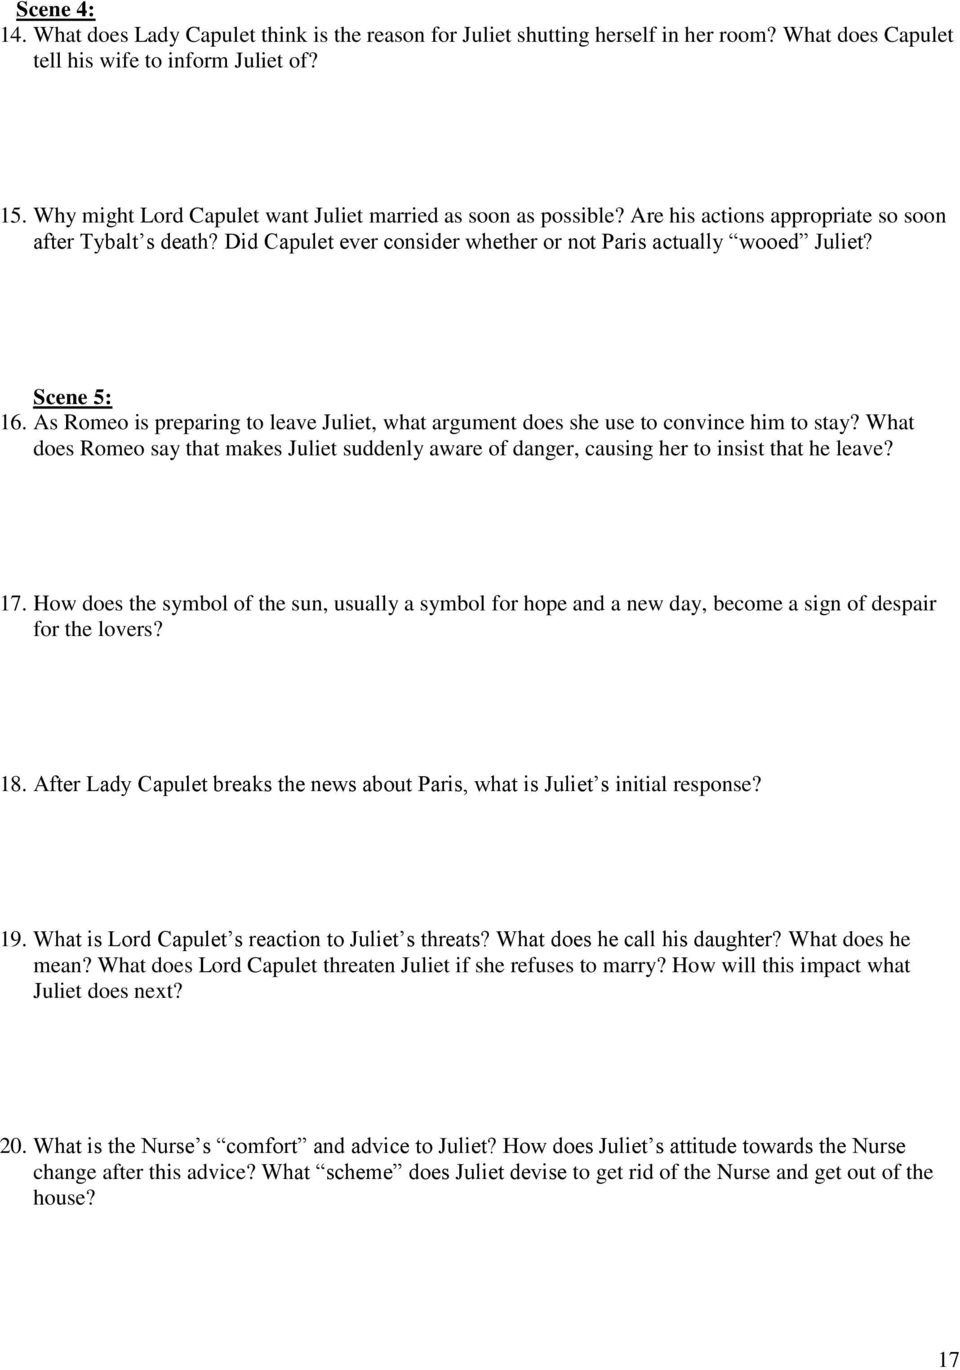 romeo juliet study guide pdf scene 5 16 as romeo is preparing to leave juliet what argument does